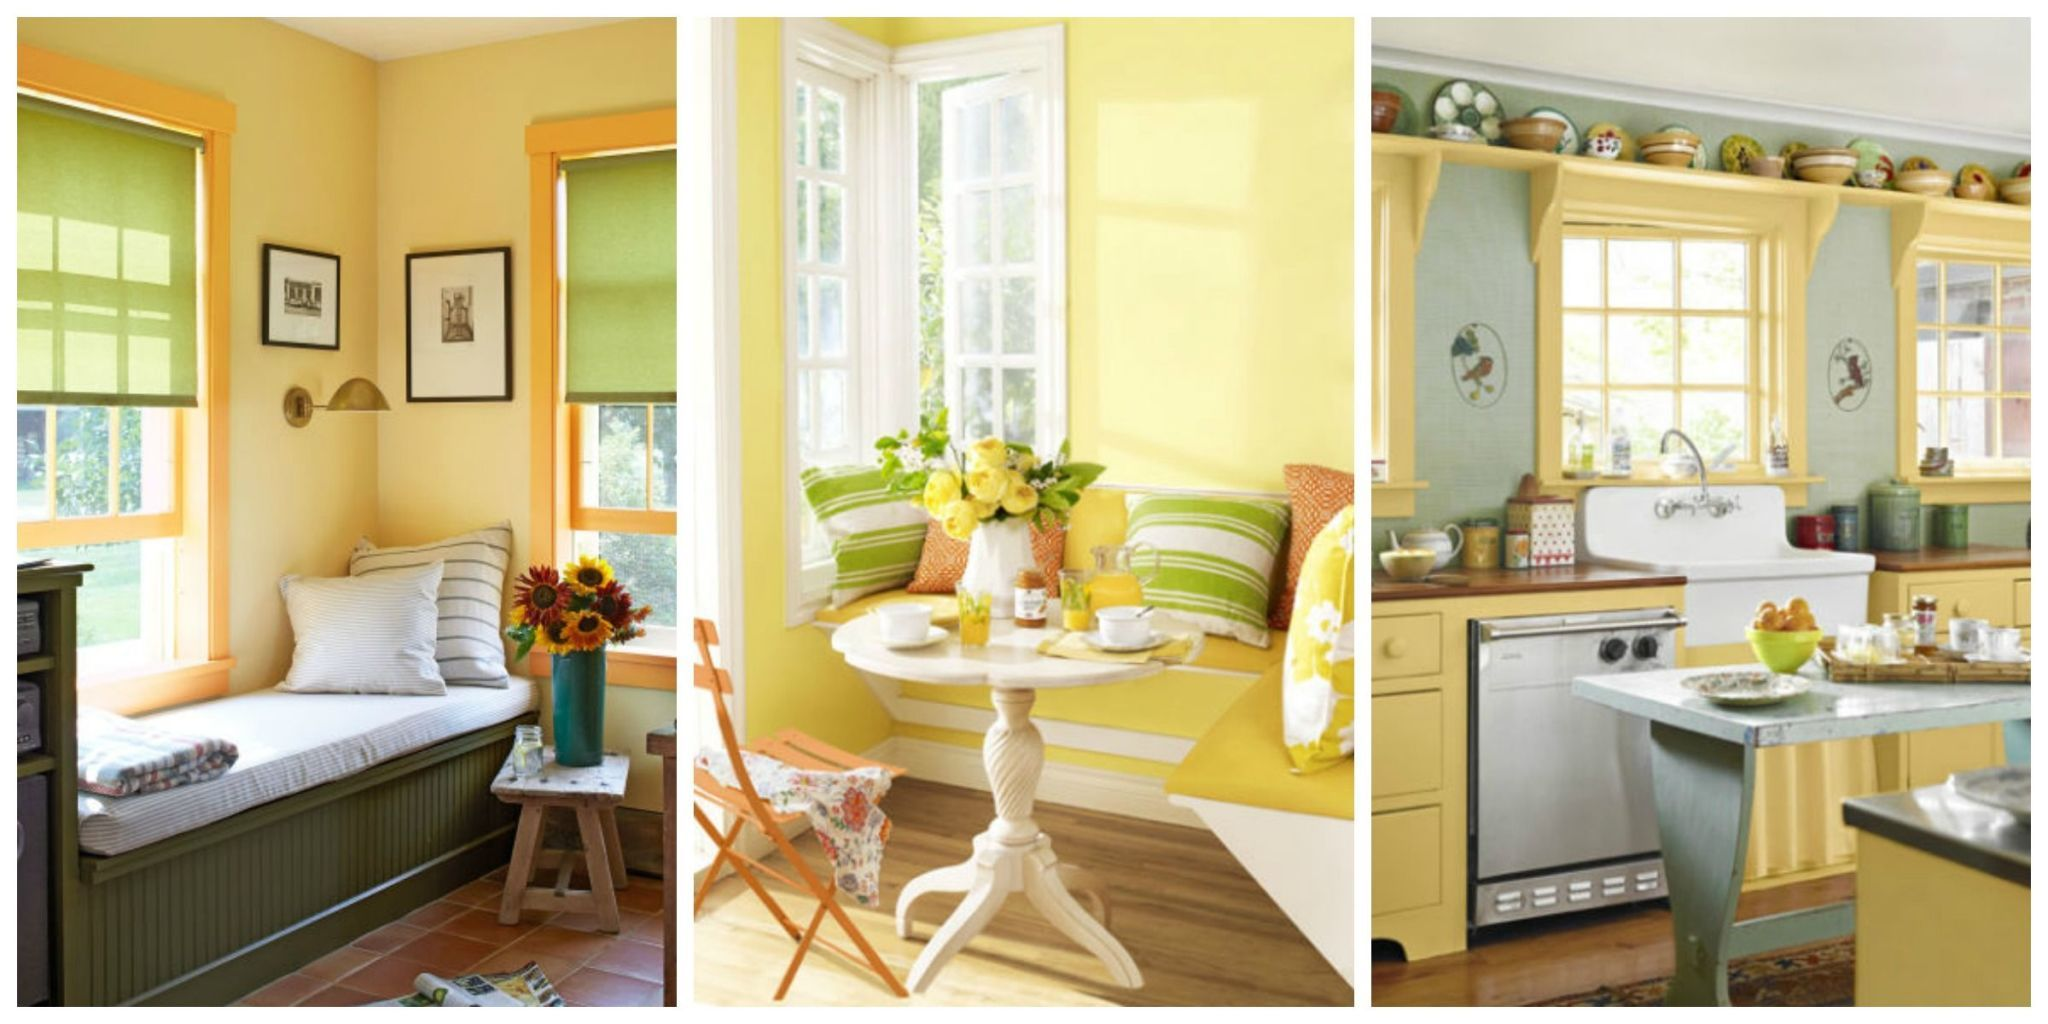 Charming Whether A Swath Of Canary Or A Hint Of Golden, Bring The Sunshine Inside  With Yellow Wall Paint, Decor, And Accents.